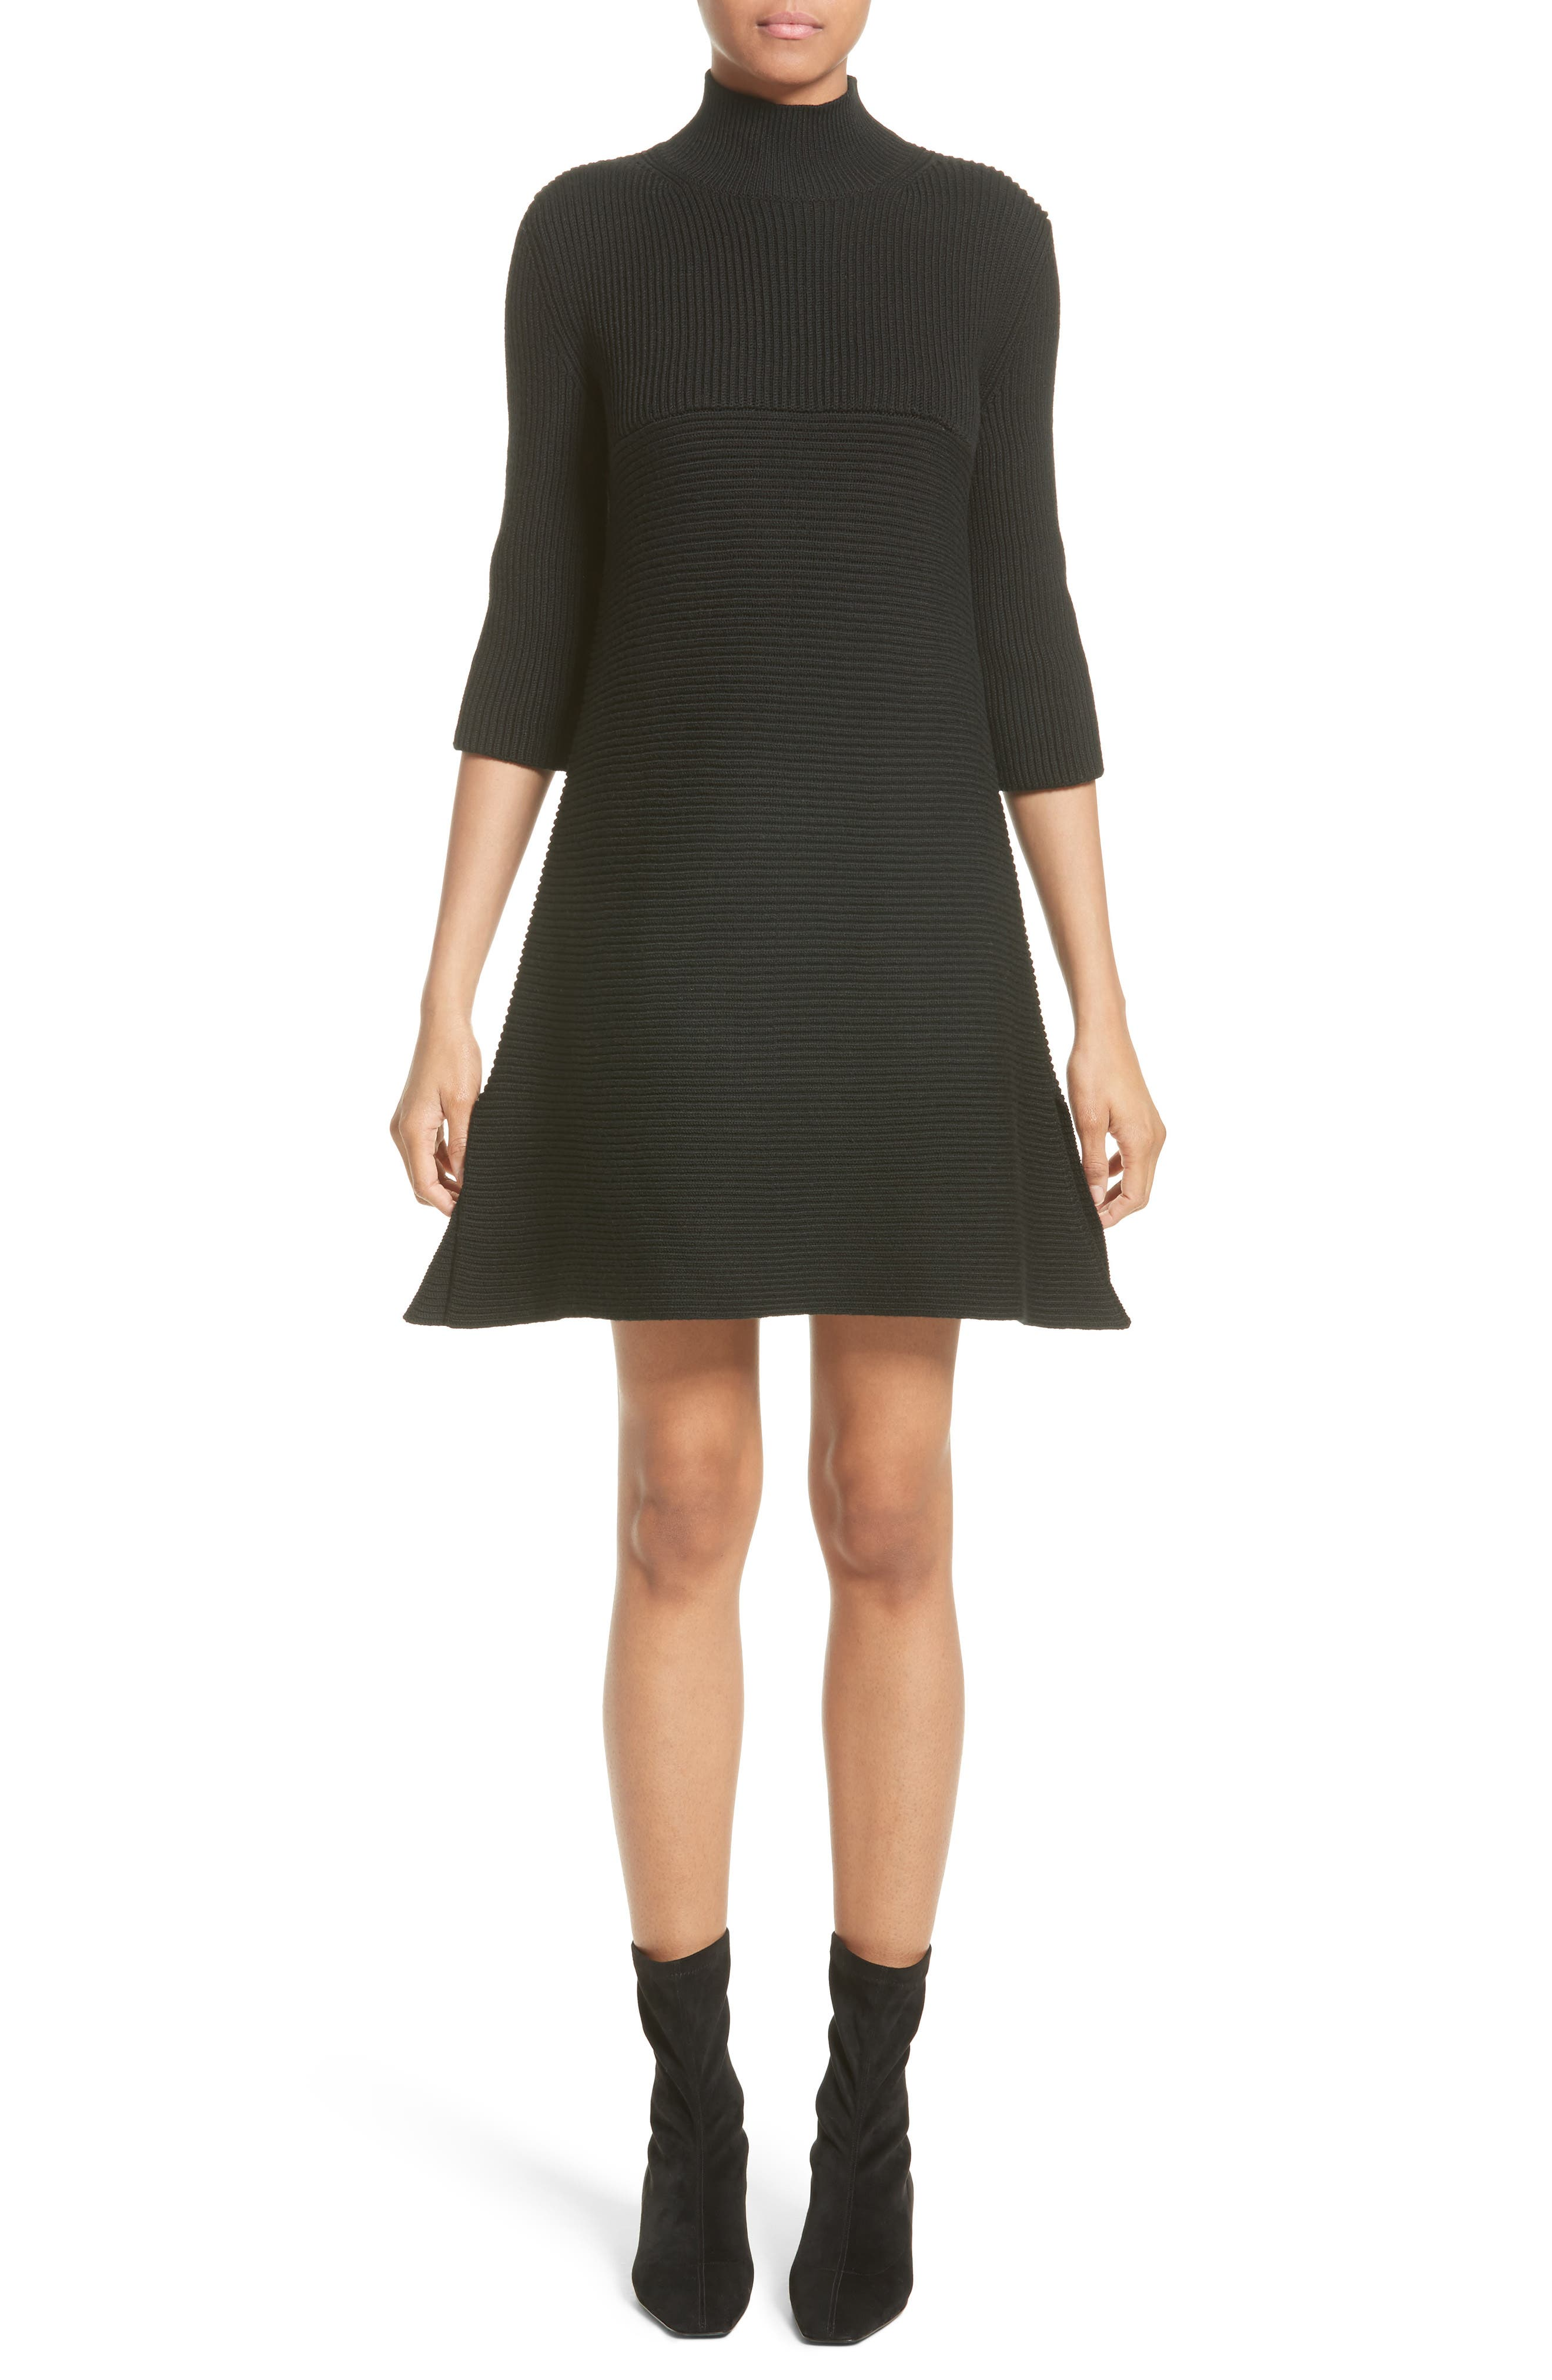 Stella McCartney Virgin Wool Rib Knit Dress